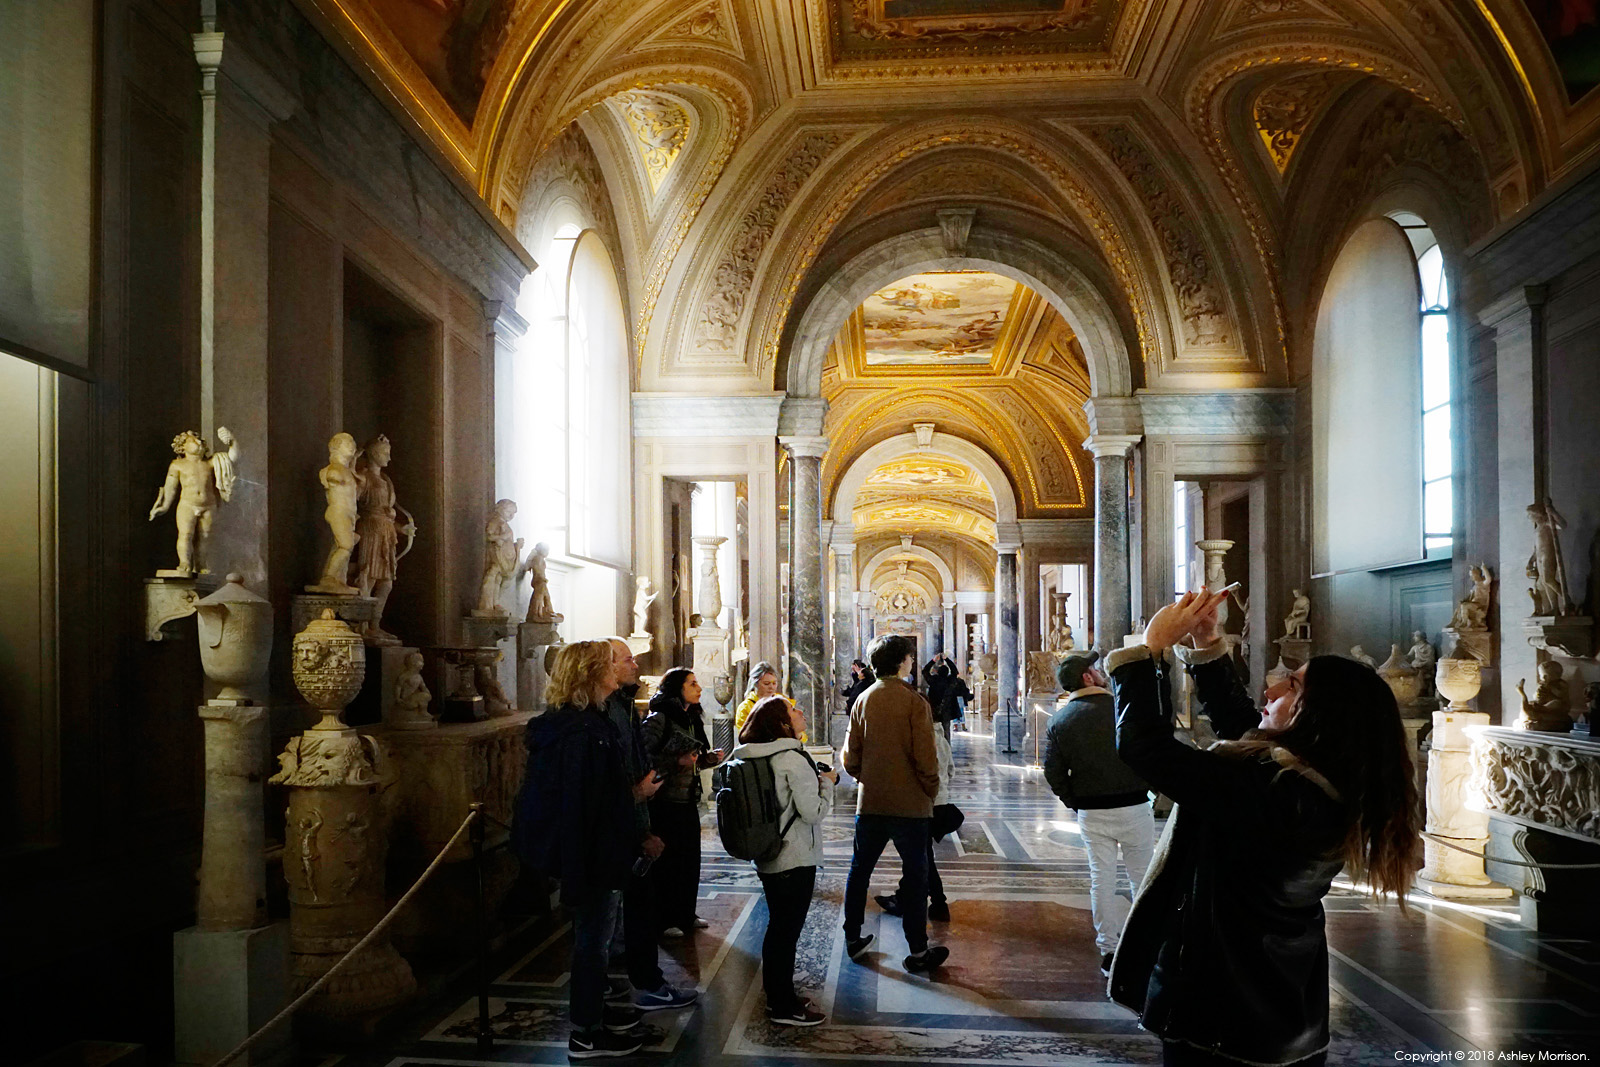 The Gallery of the Candelabra in the Vatican Museums.